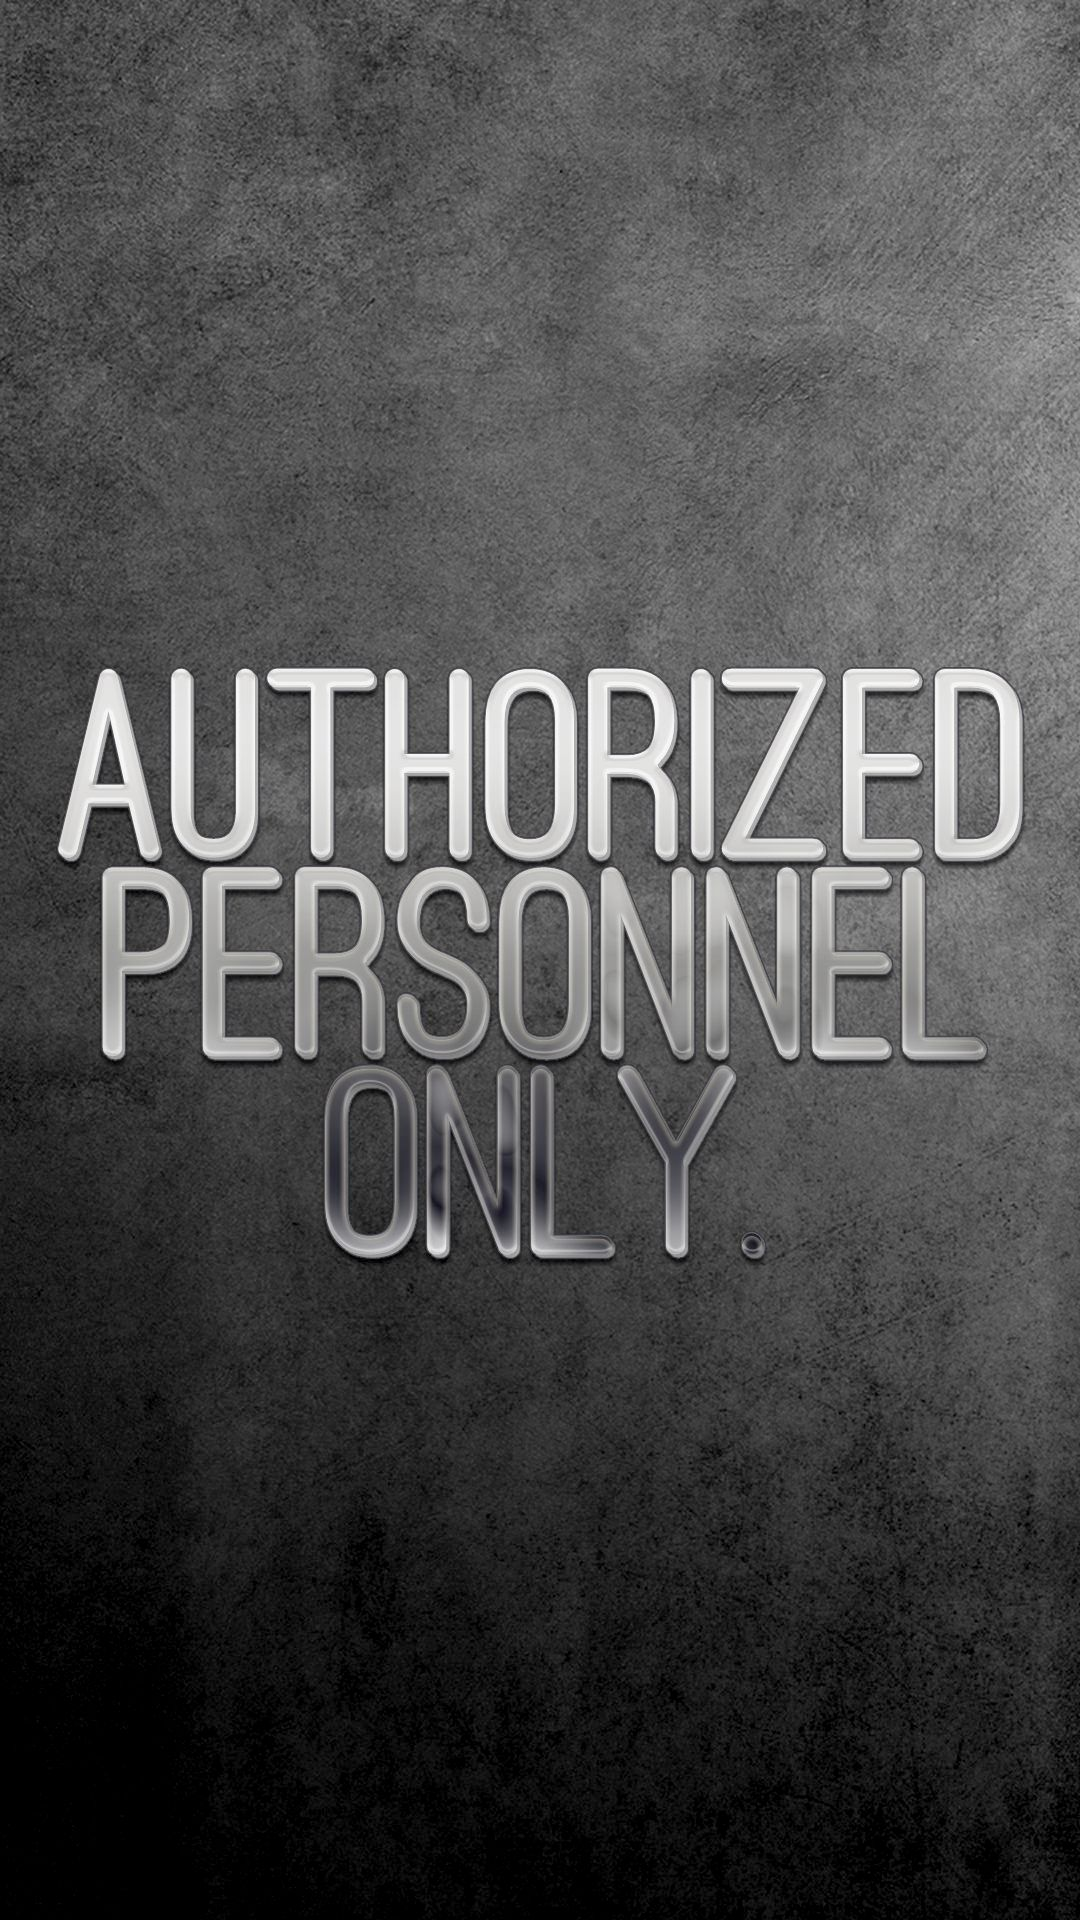 Lock Screen Authorized Personnel Only Iphone Wallpaper